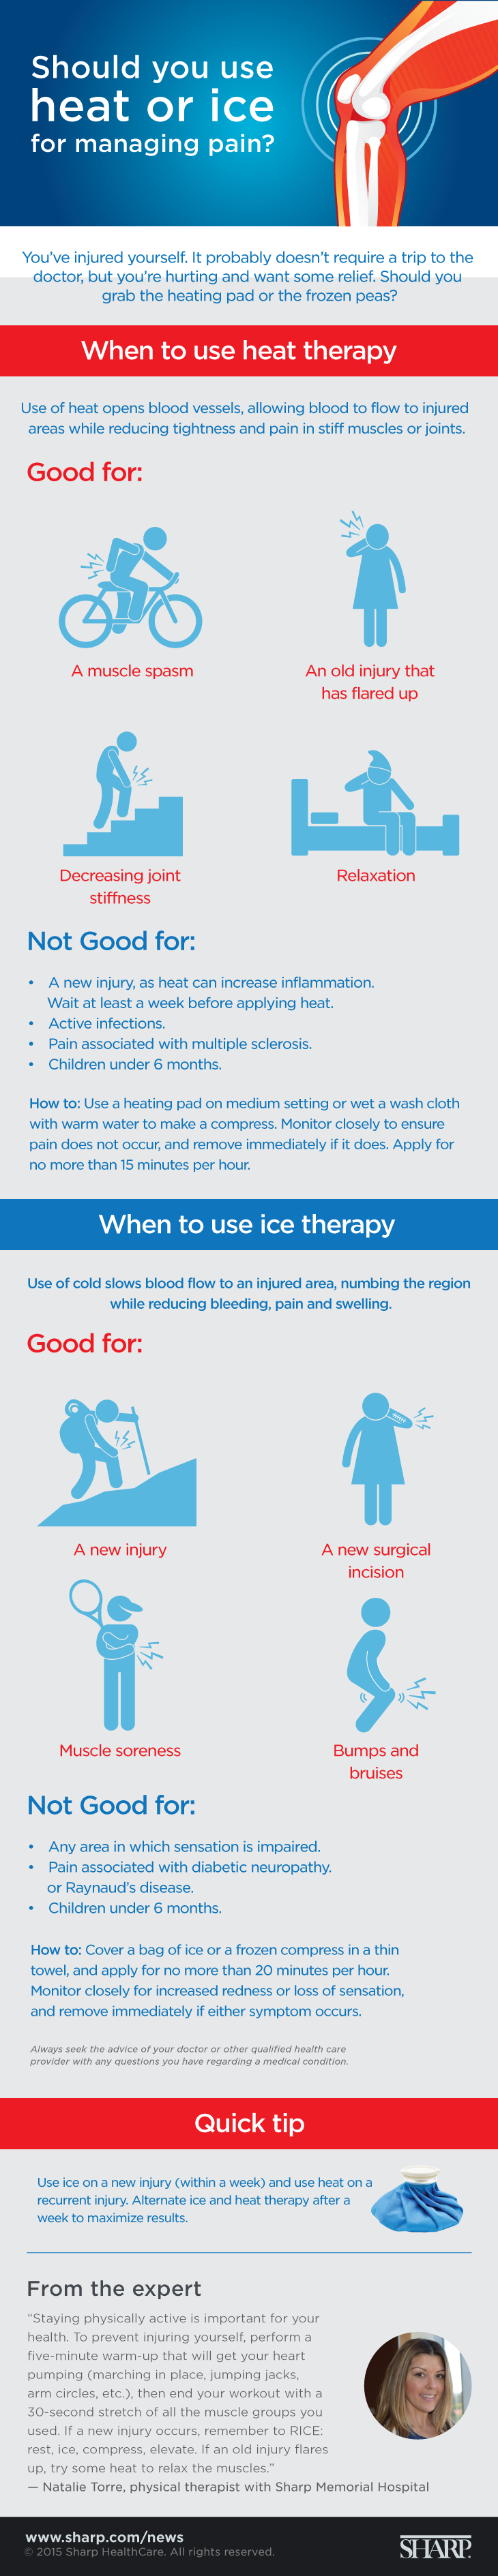 Should you use heat or ice to manage pain infographic